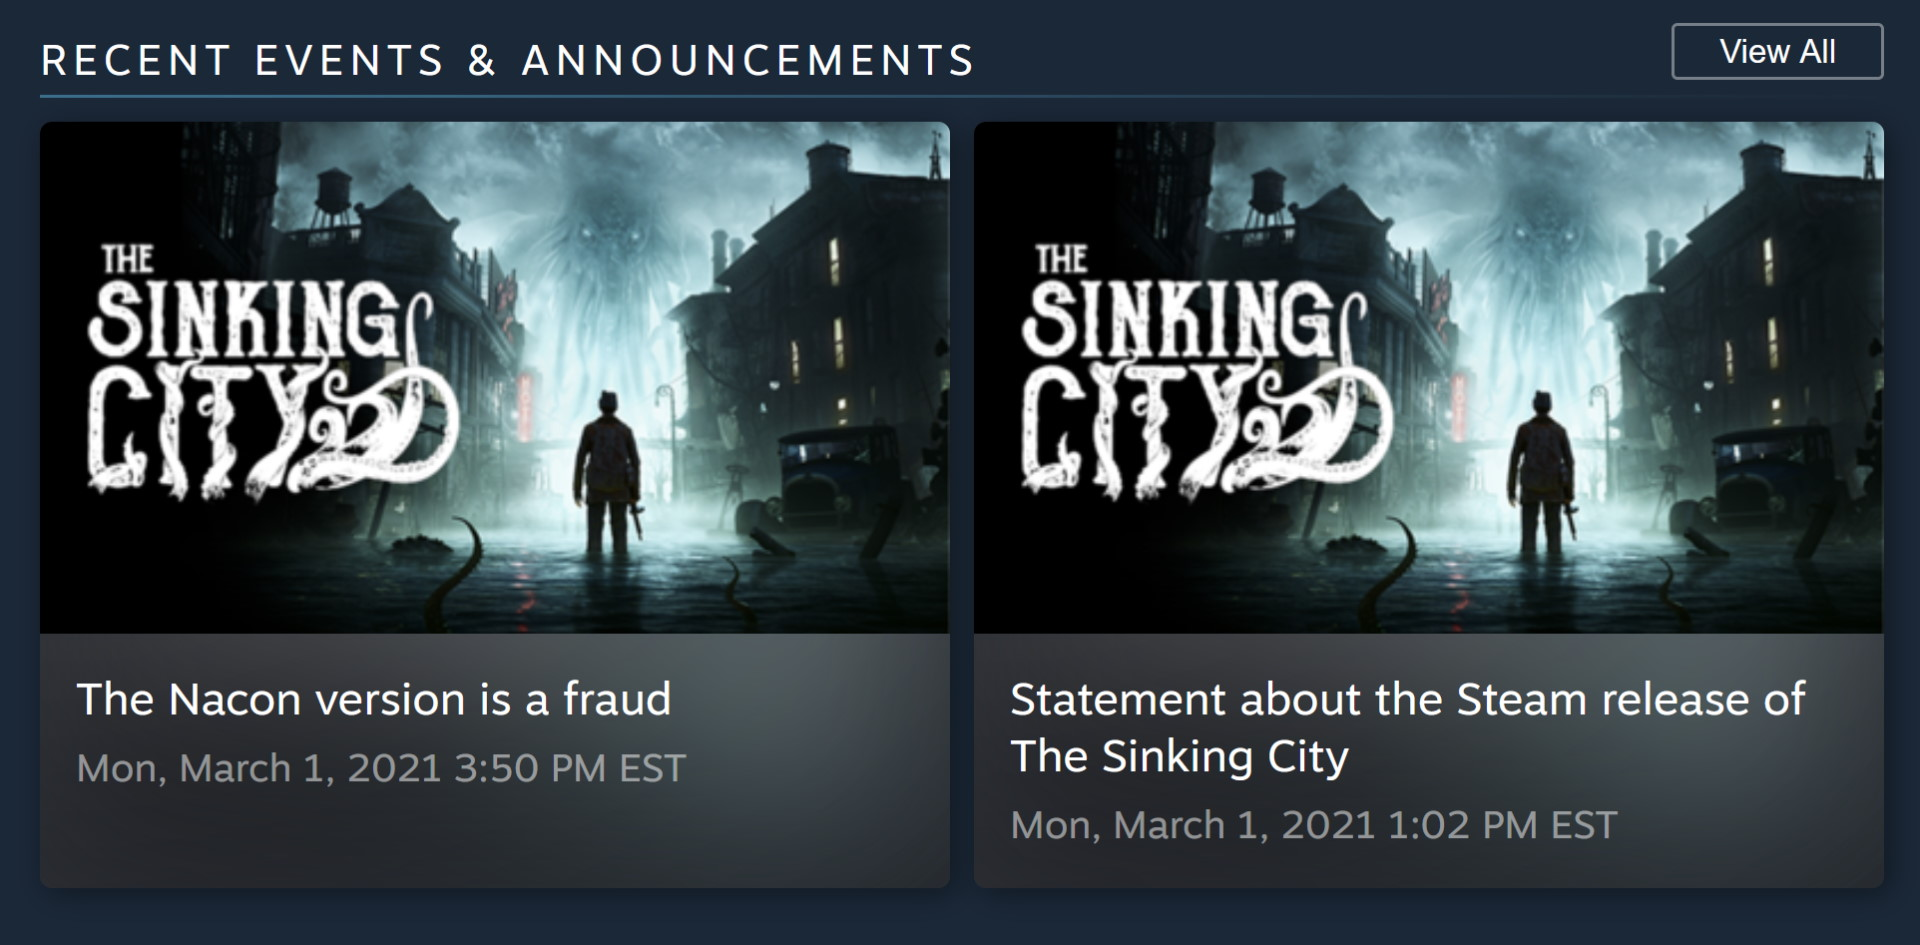 The Sinking City Steam announcements